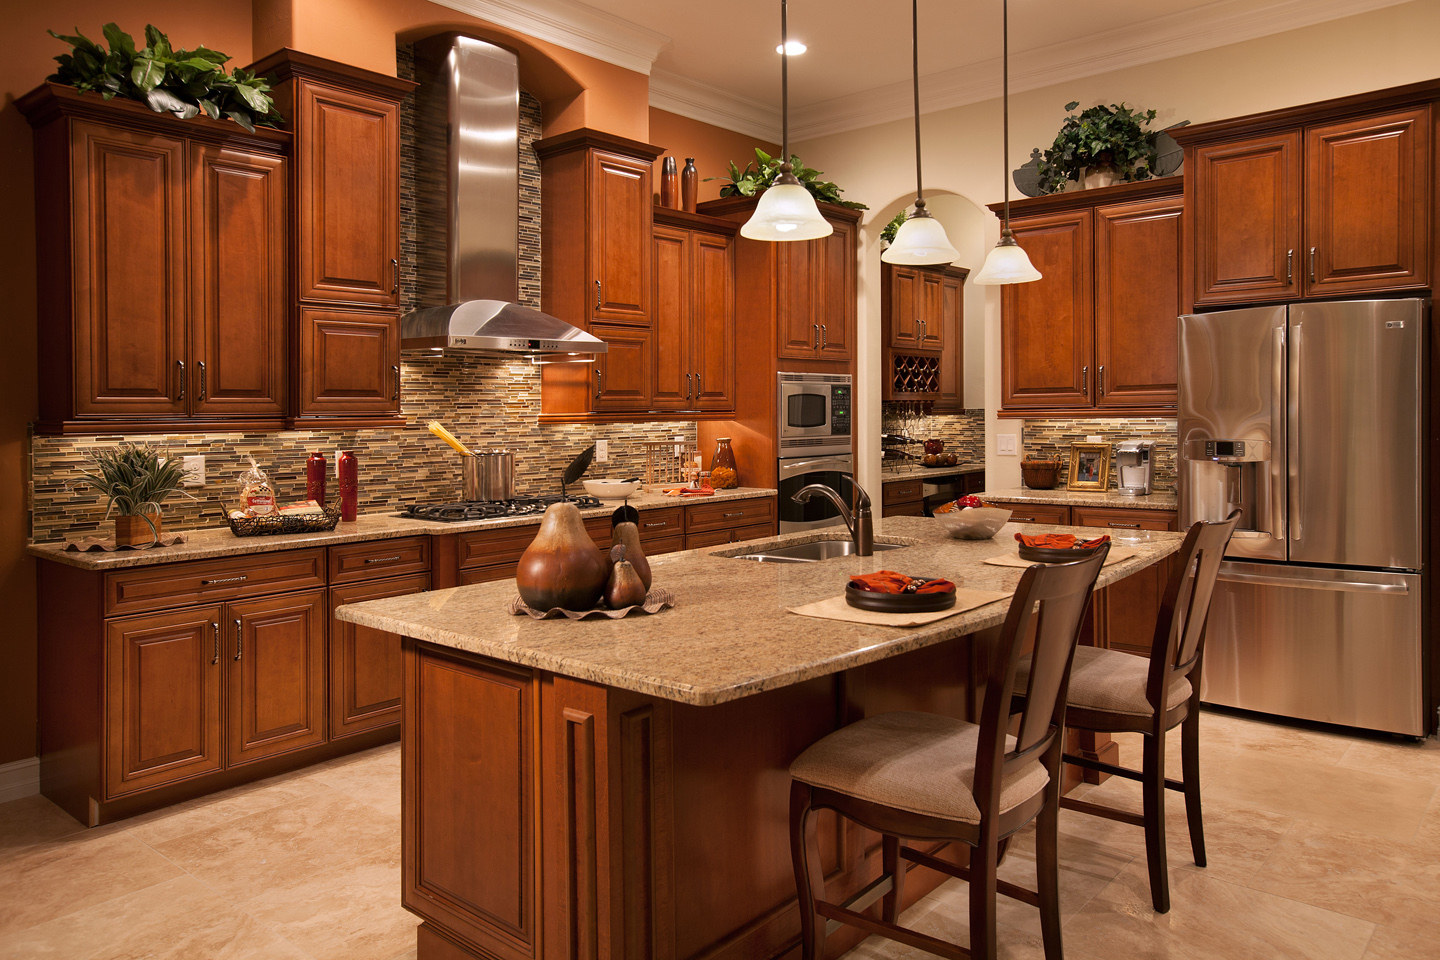 Commodel Kitchen : Horton Releases Washington Luxury Model in Fiddler's Creek